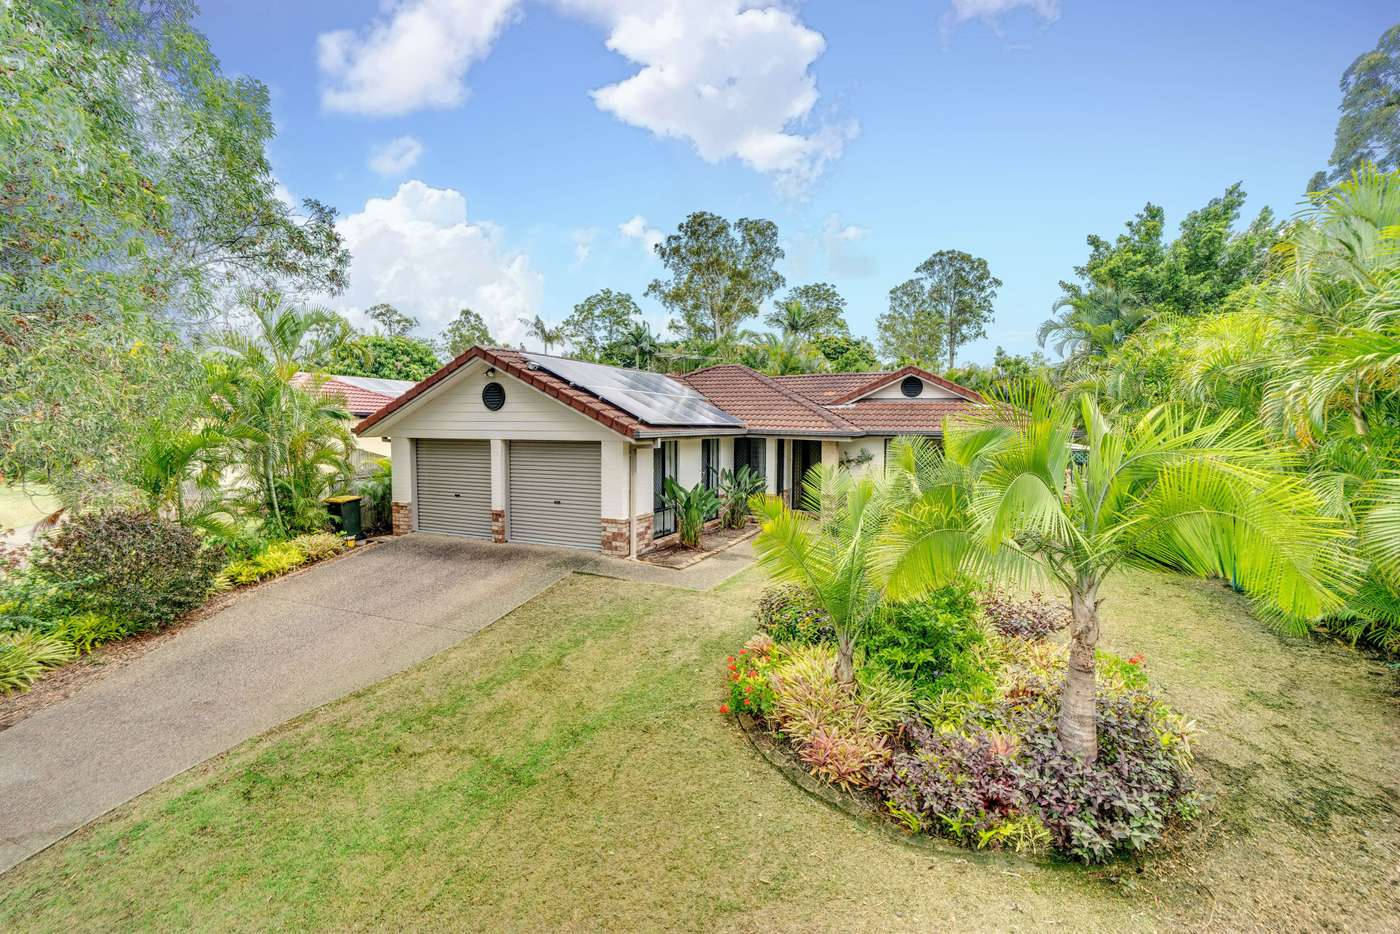 Main view of Homely house listing, 15 Fraser Place, Forest Lake QLD 4078